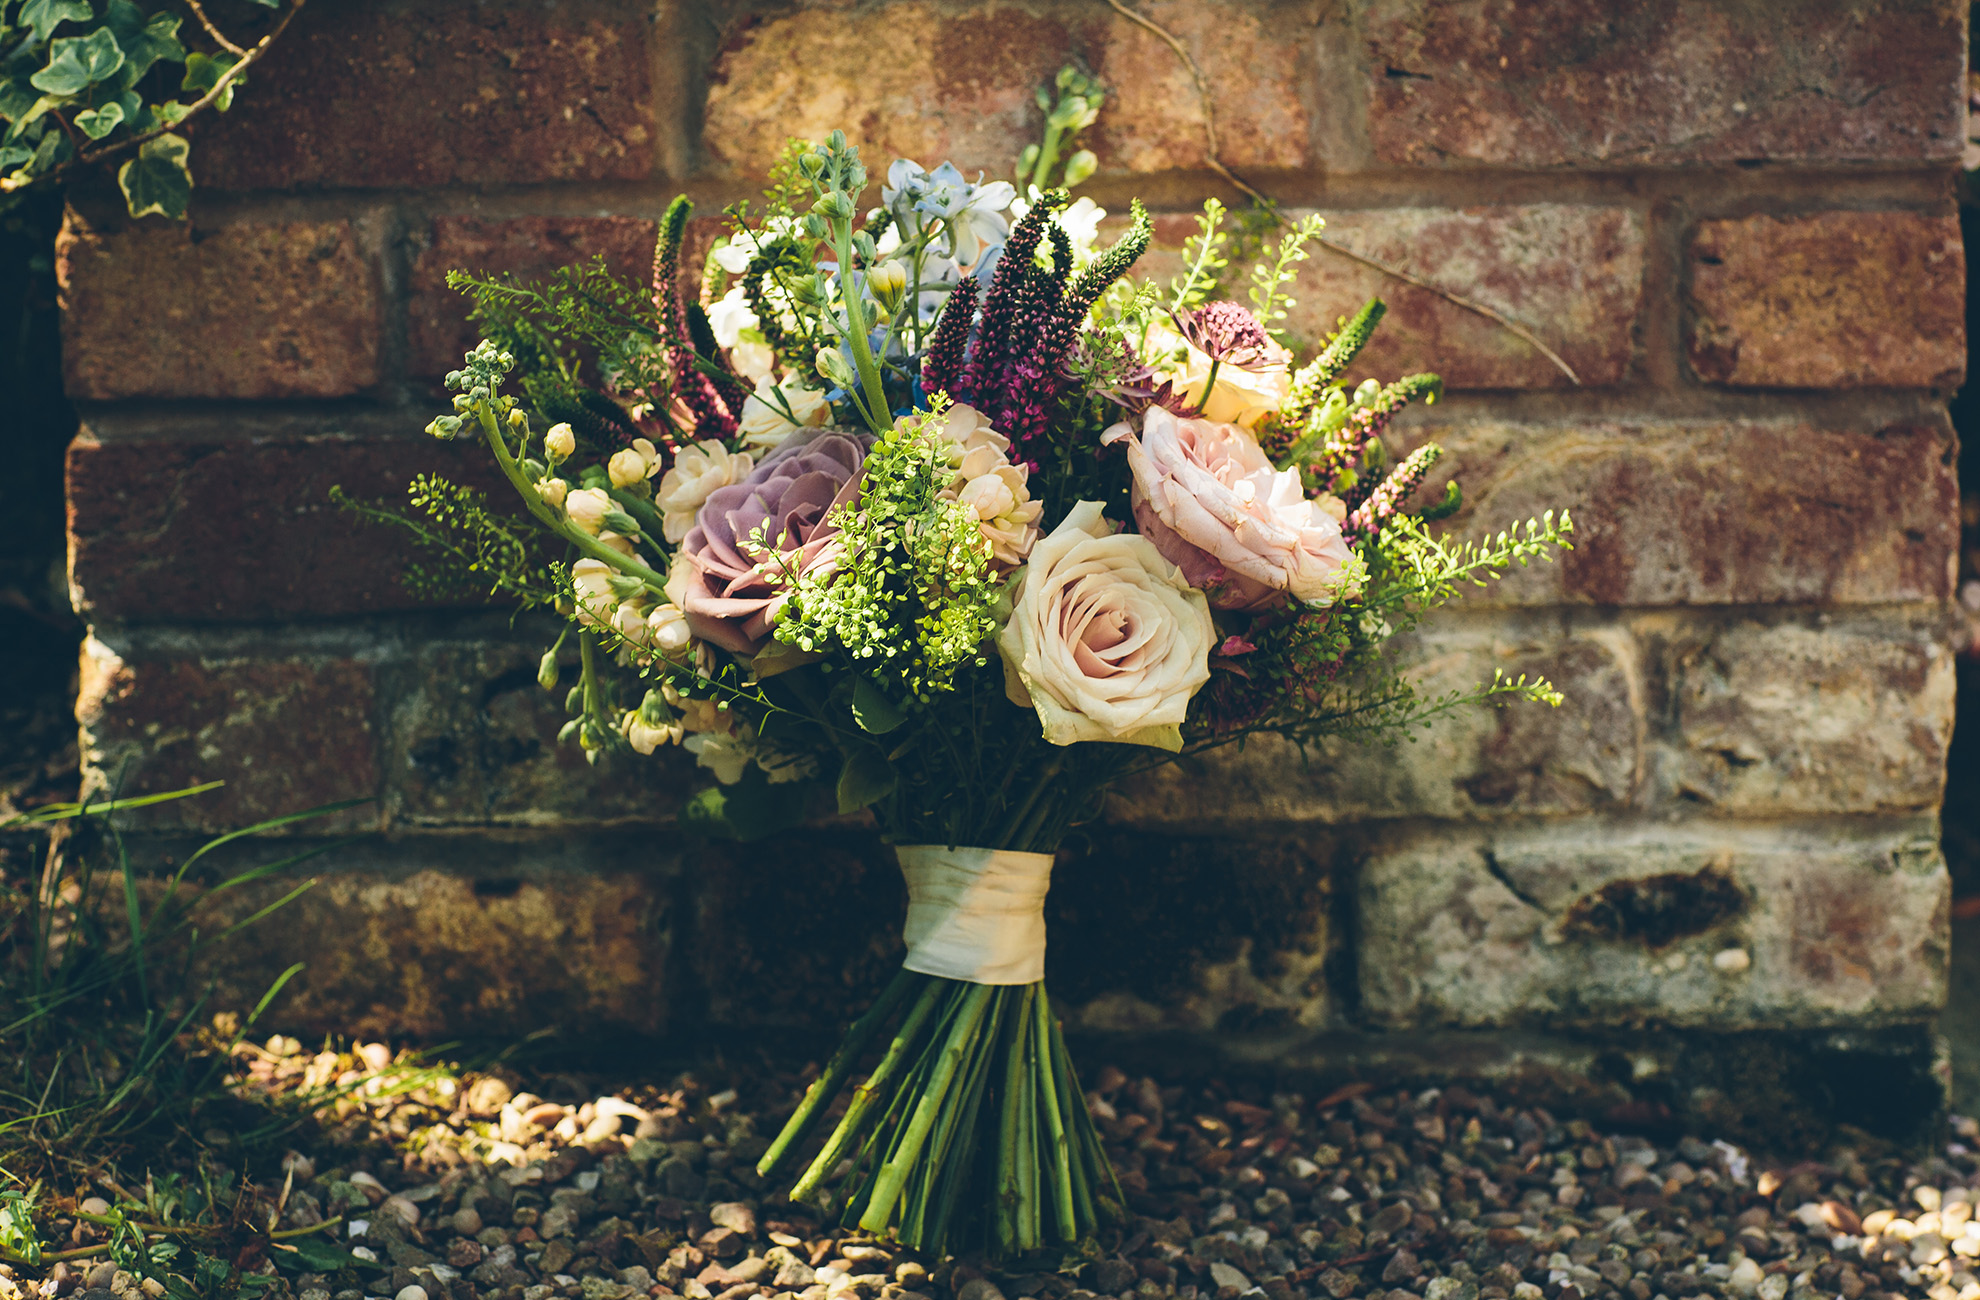 Wild flower bouquets always look good for a summer wedding at Combermere Abbey